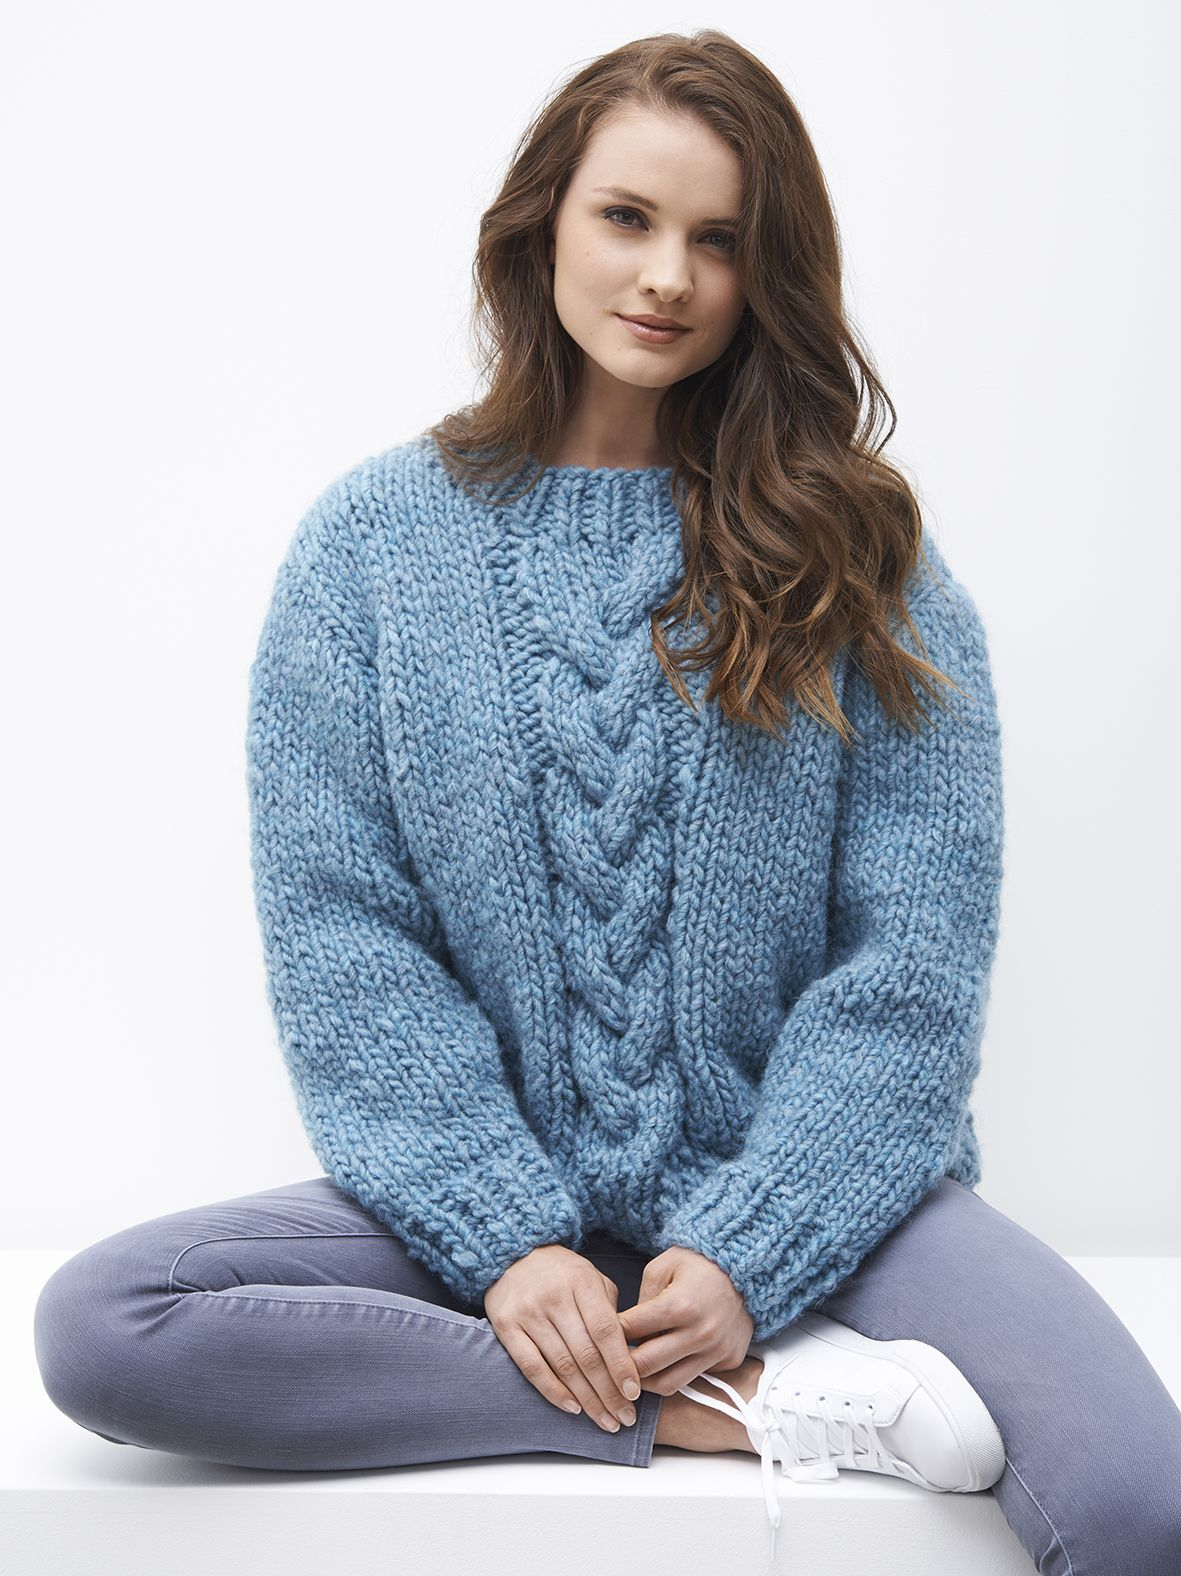 Chunky knit jumper by Patons Australia Jumper knitting